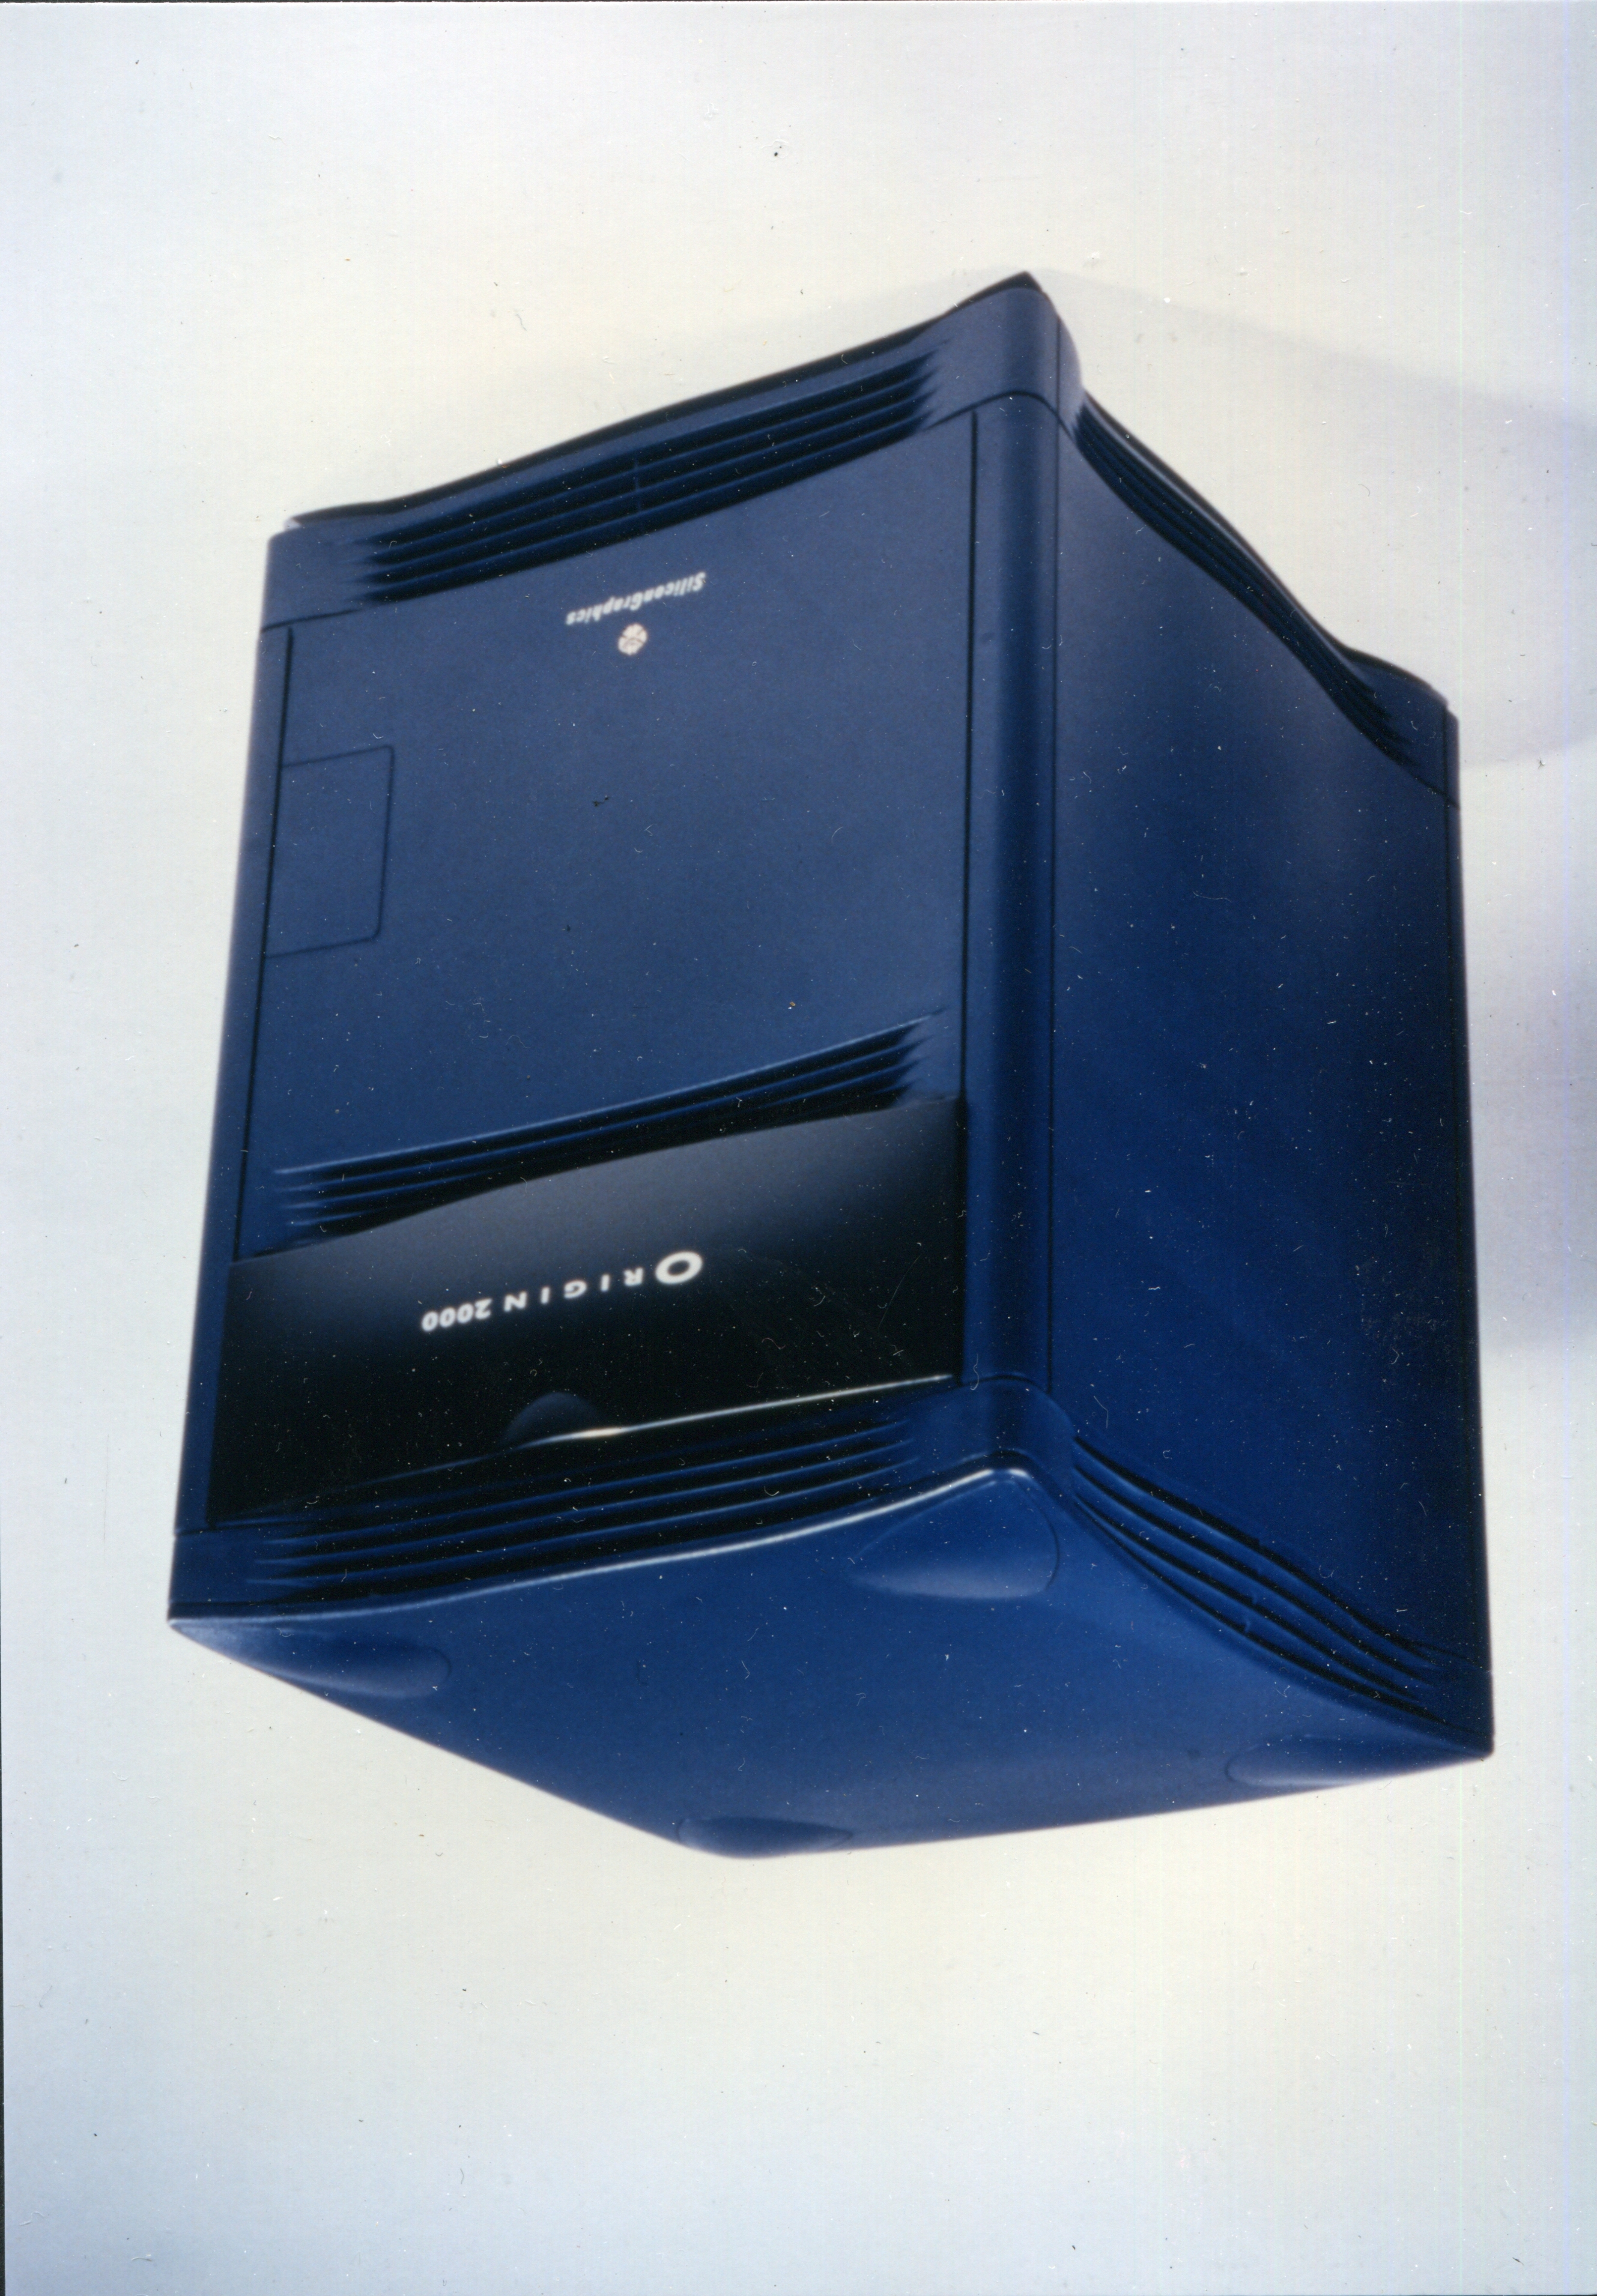 The Origin 2000 deskside workstation